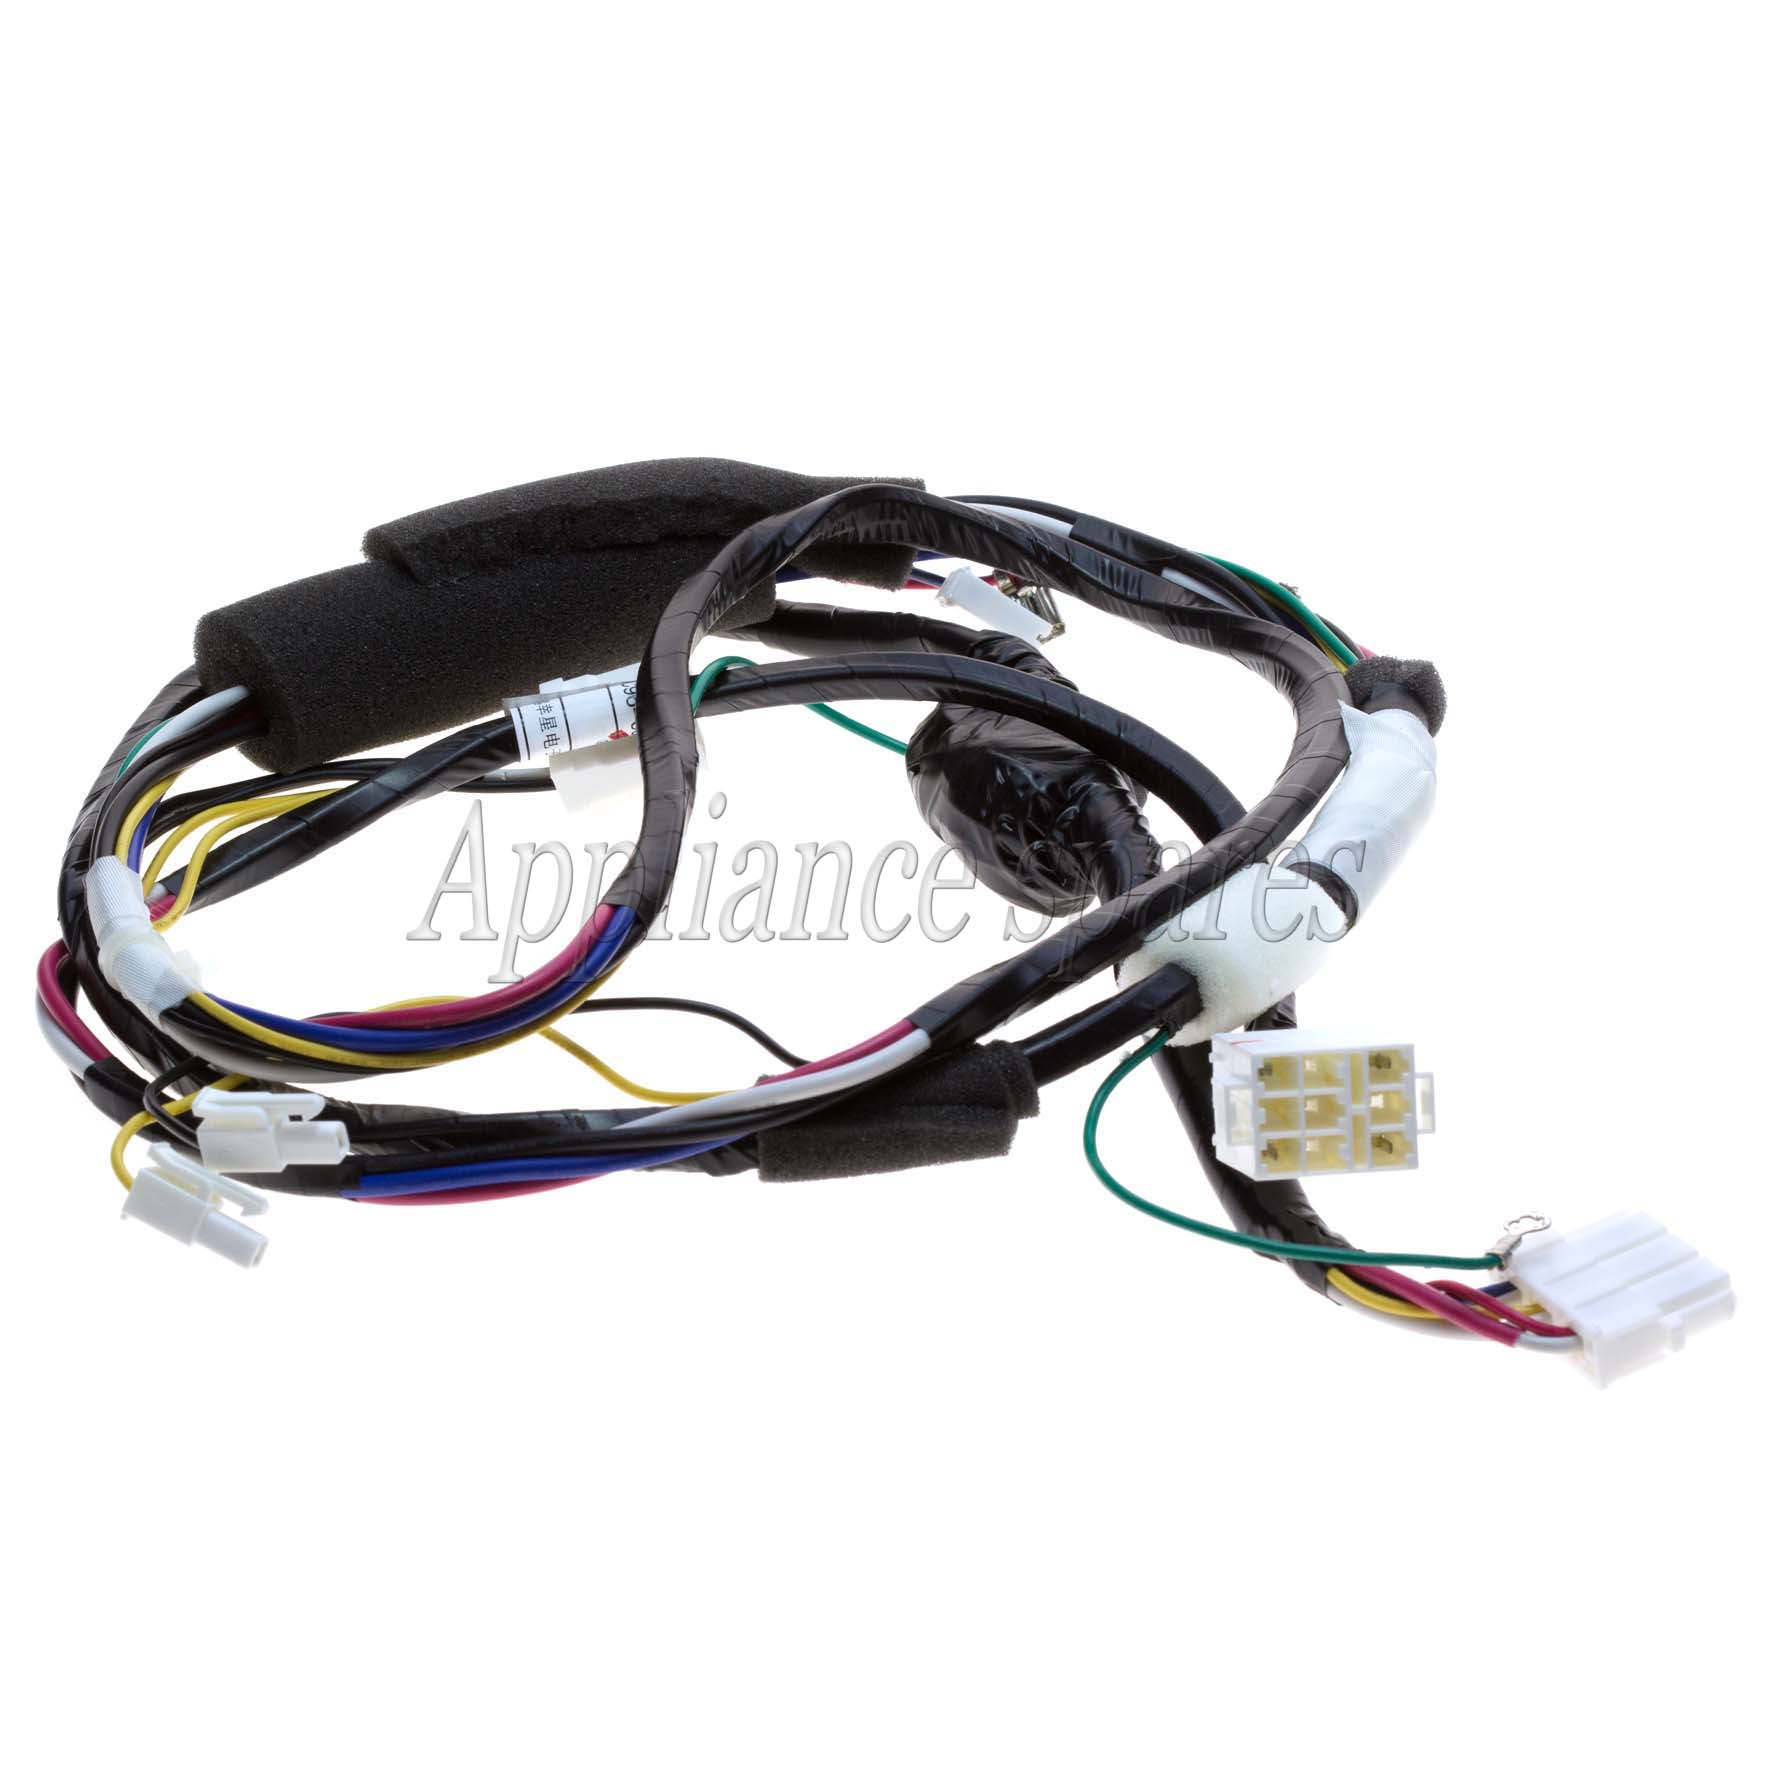 Samsung Top Loader Washing Machine Wiring Harness Lategan And Van Wire